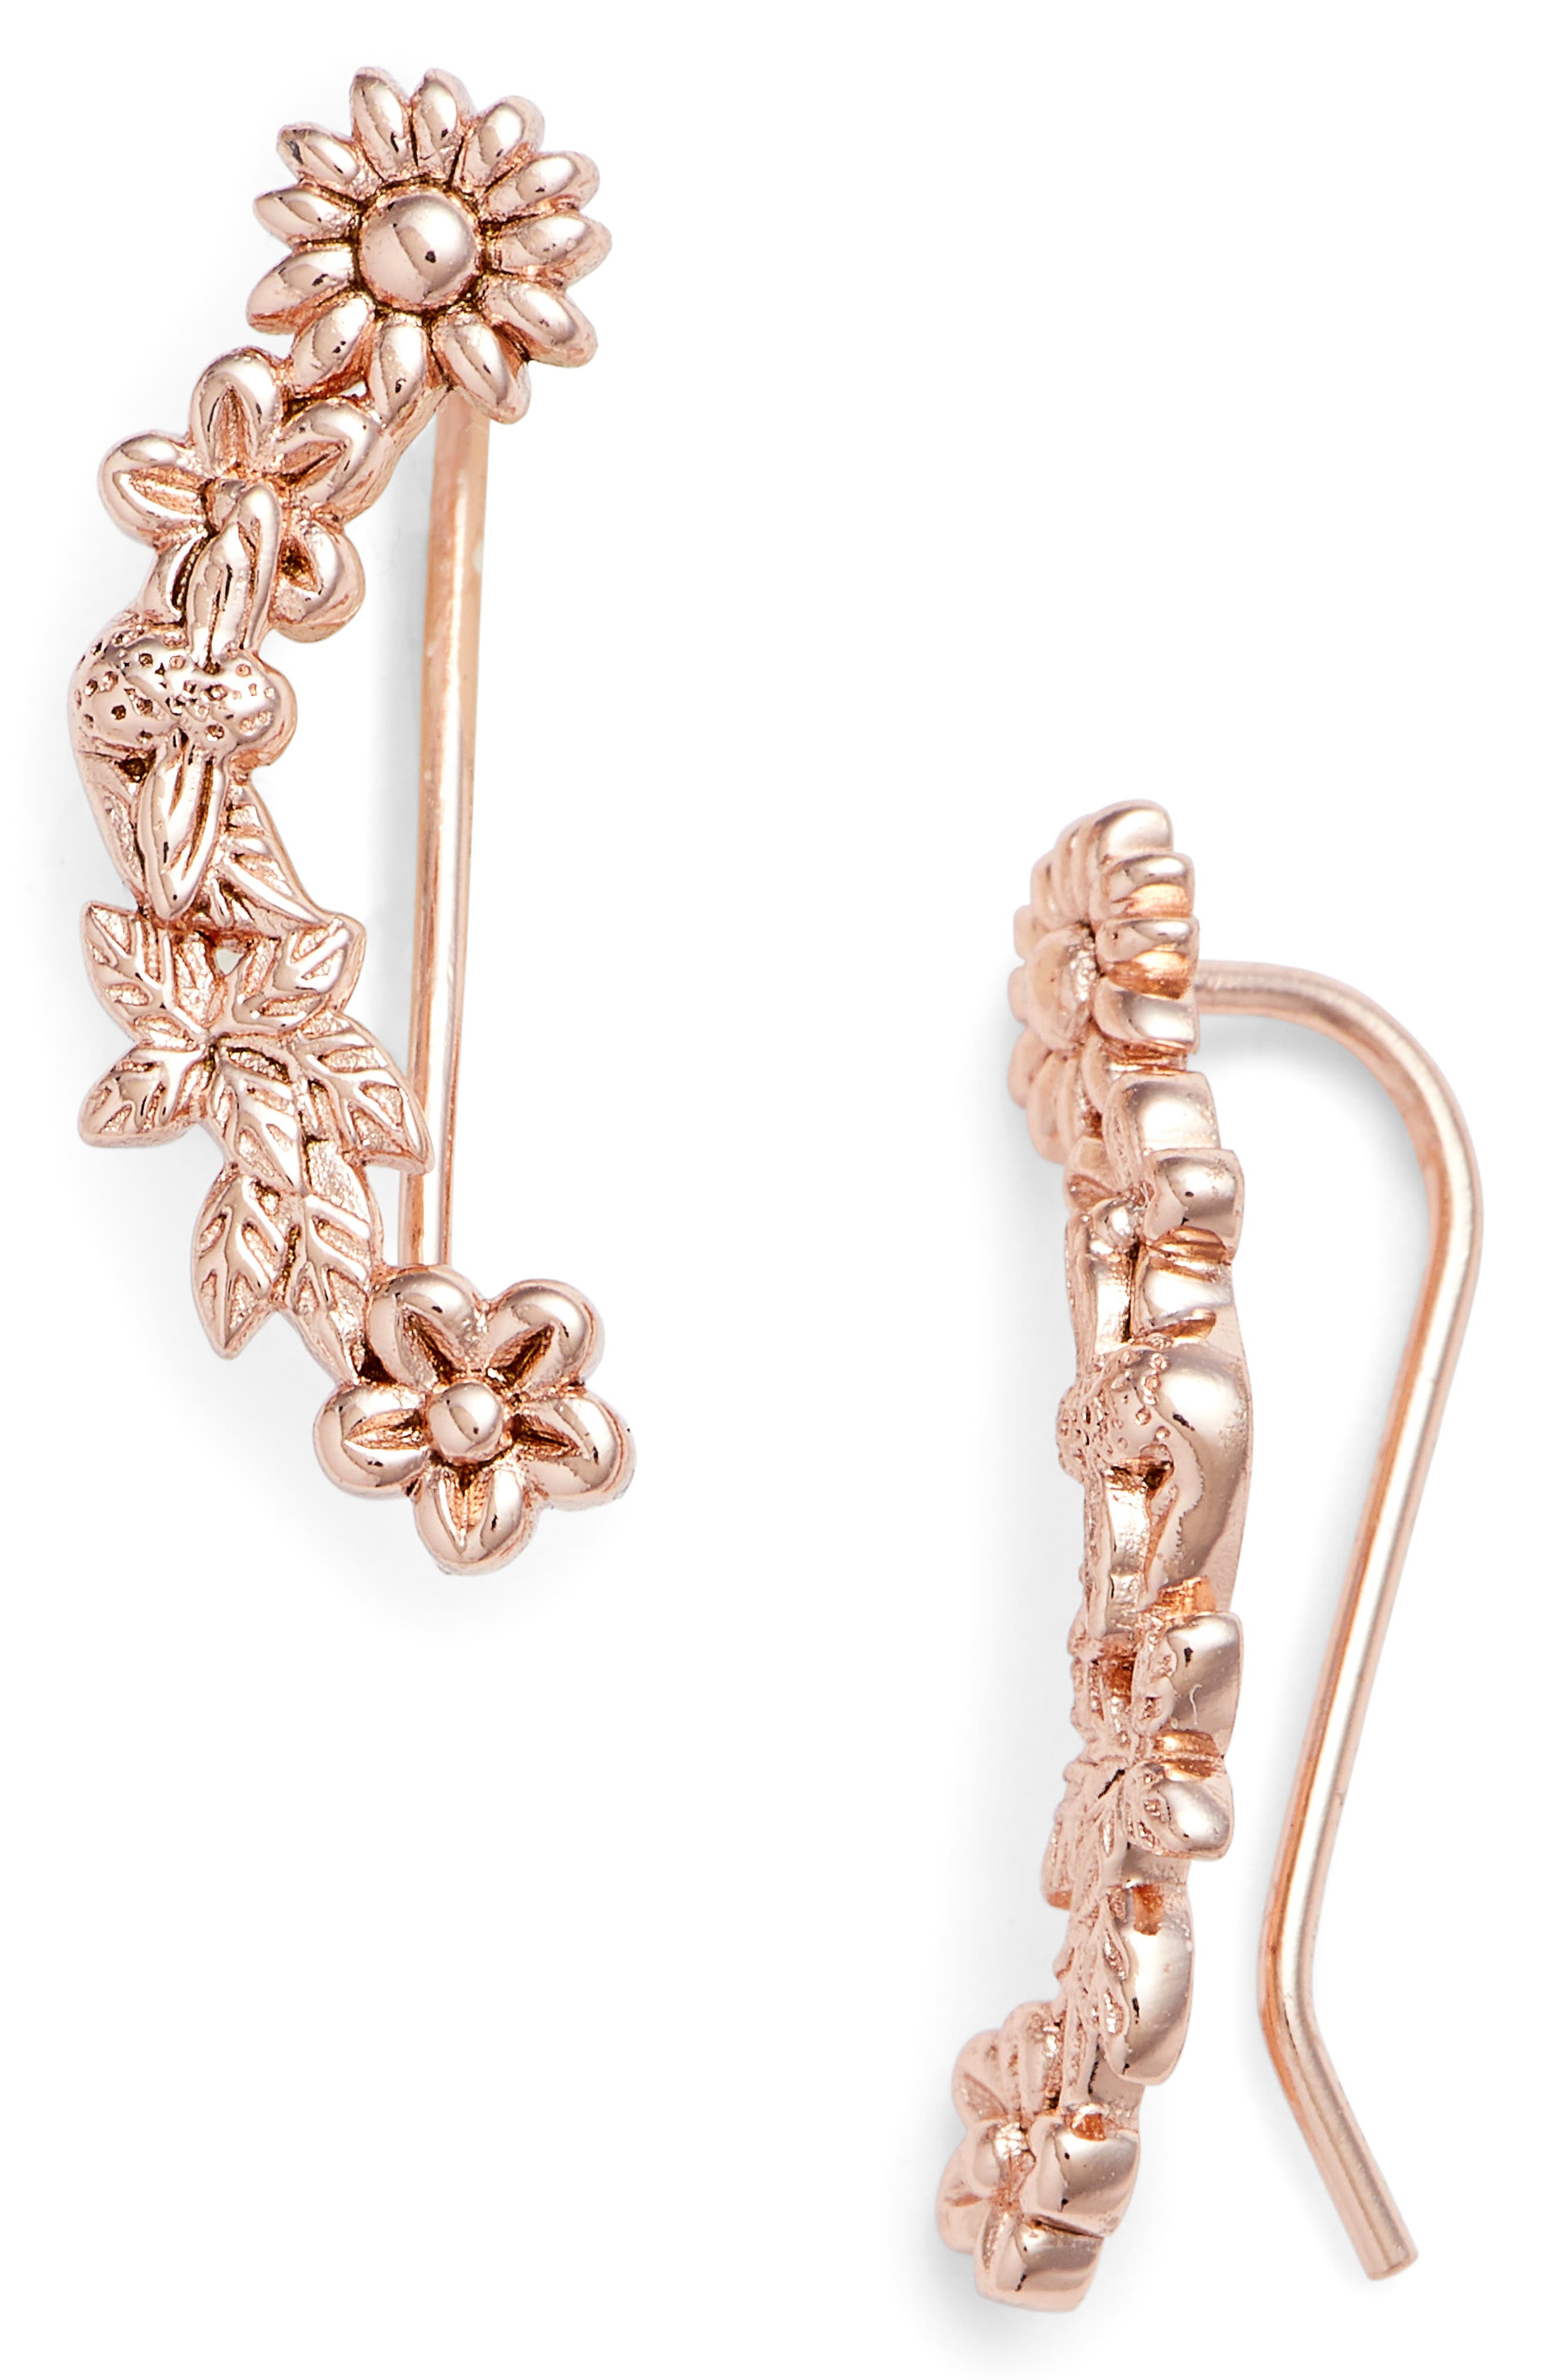 Bee Blooms Crawler Earrings,                             Main thumbnail 1, color,                             ROSE GOLD